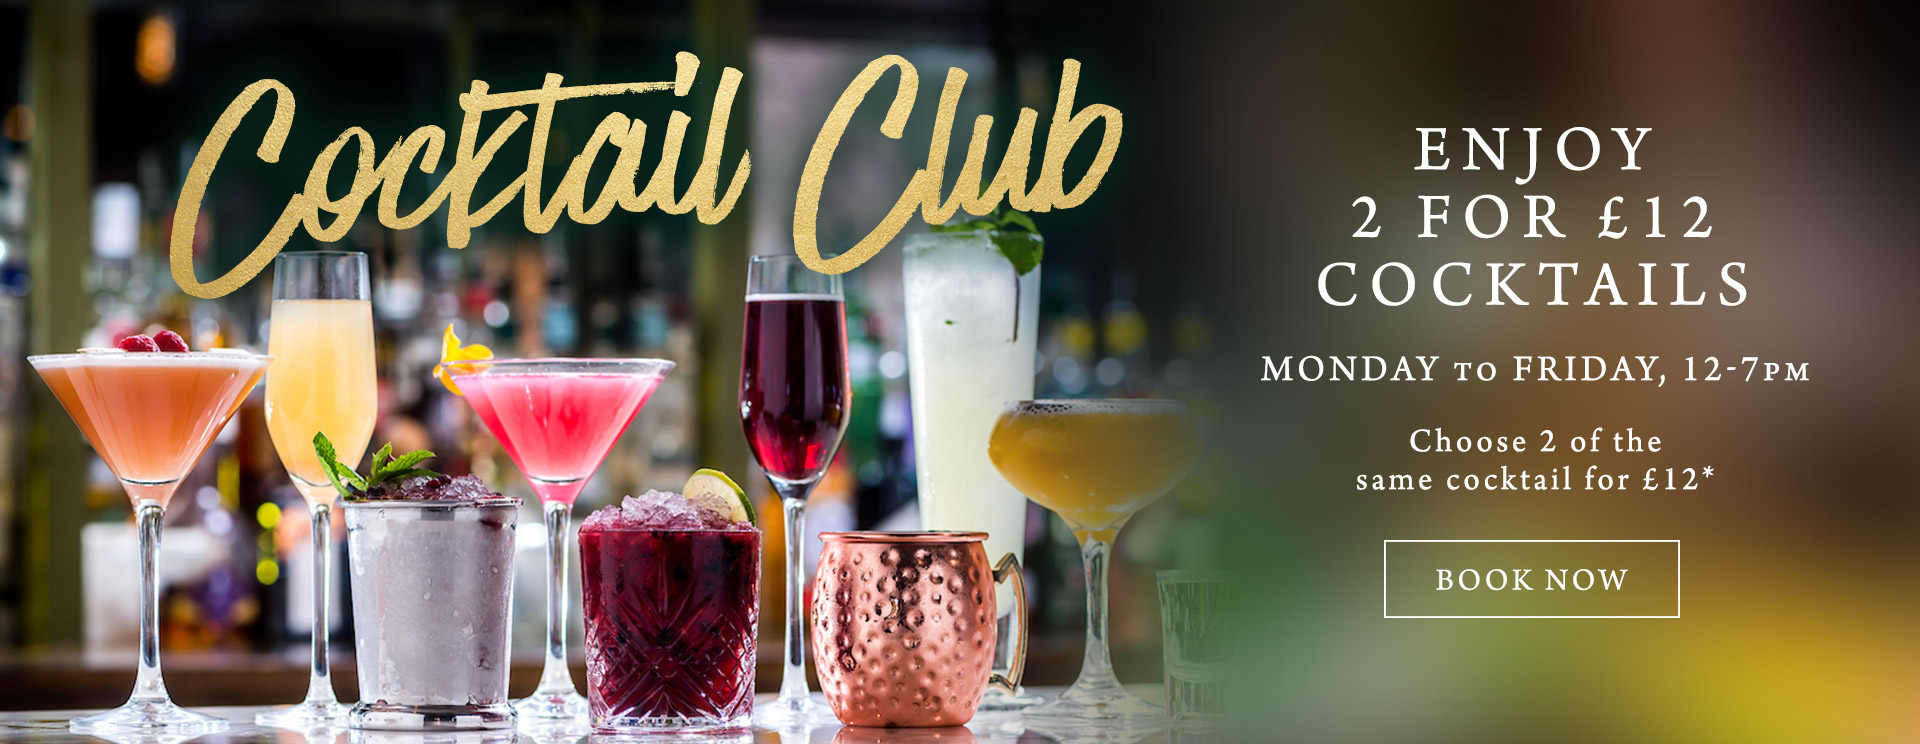 2 for £12 cocktails at The Fox